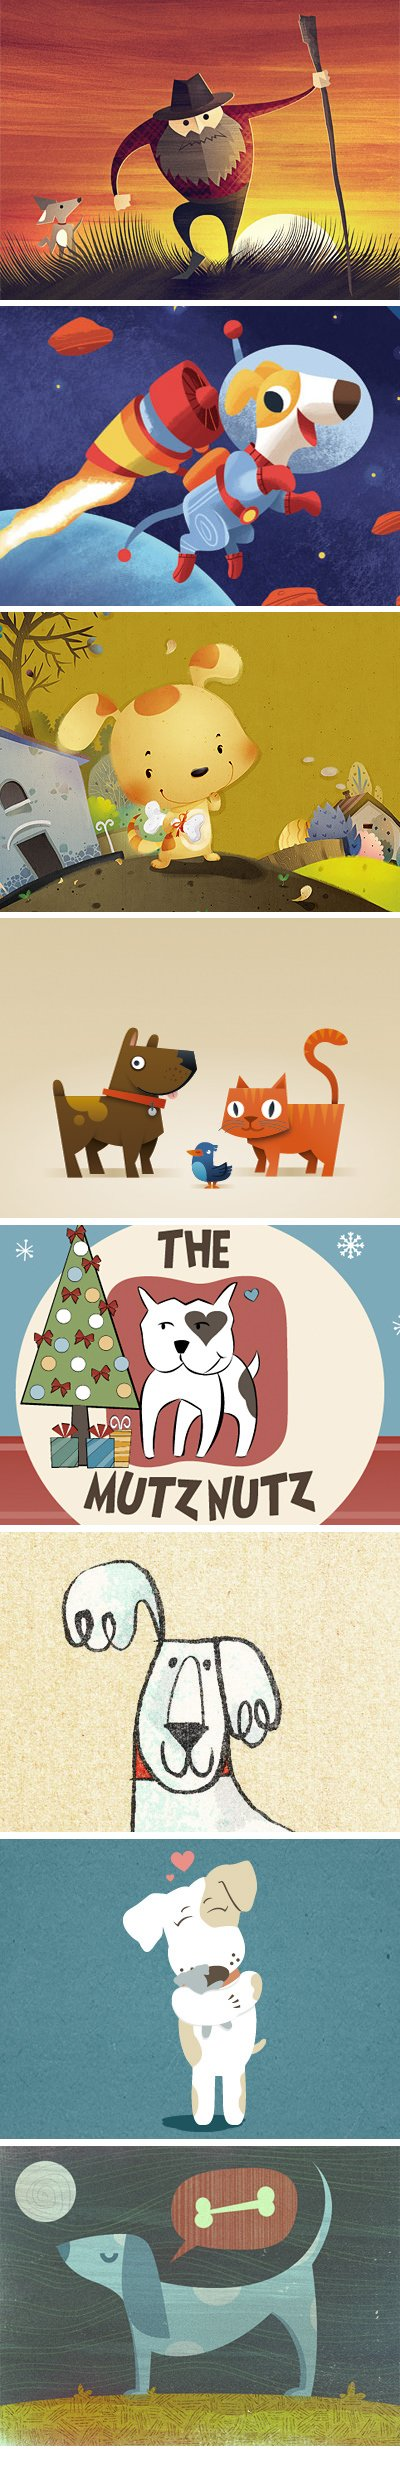 Dog Graphic Design Examples